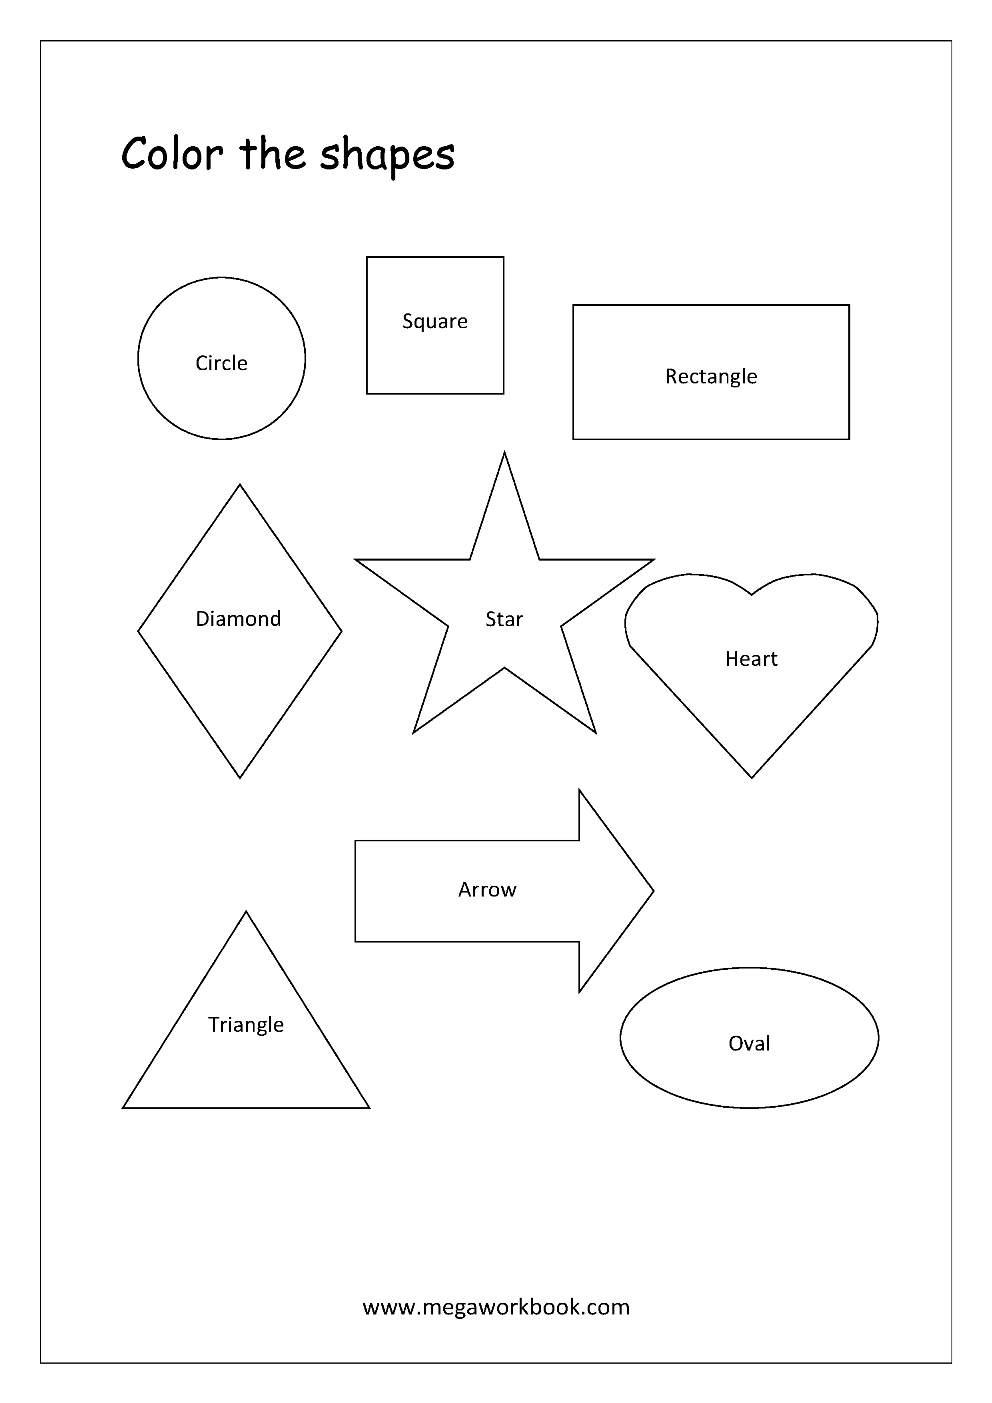 Free Shapes Worksheets - Trace And Color Shapes - MegaWorkbook